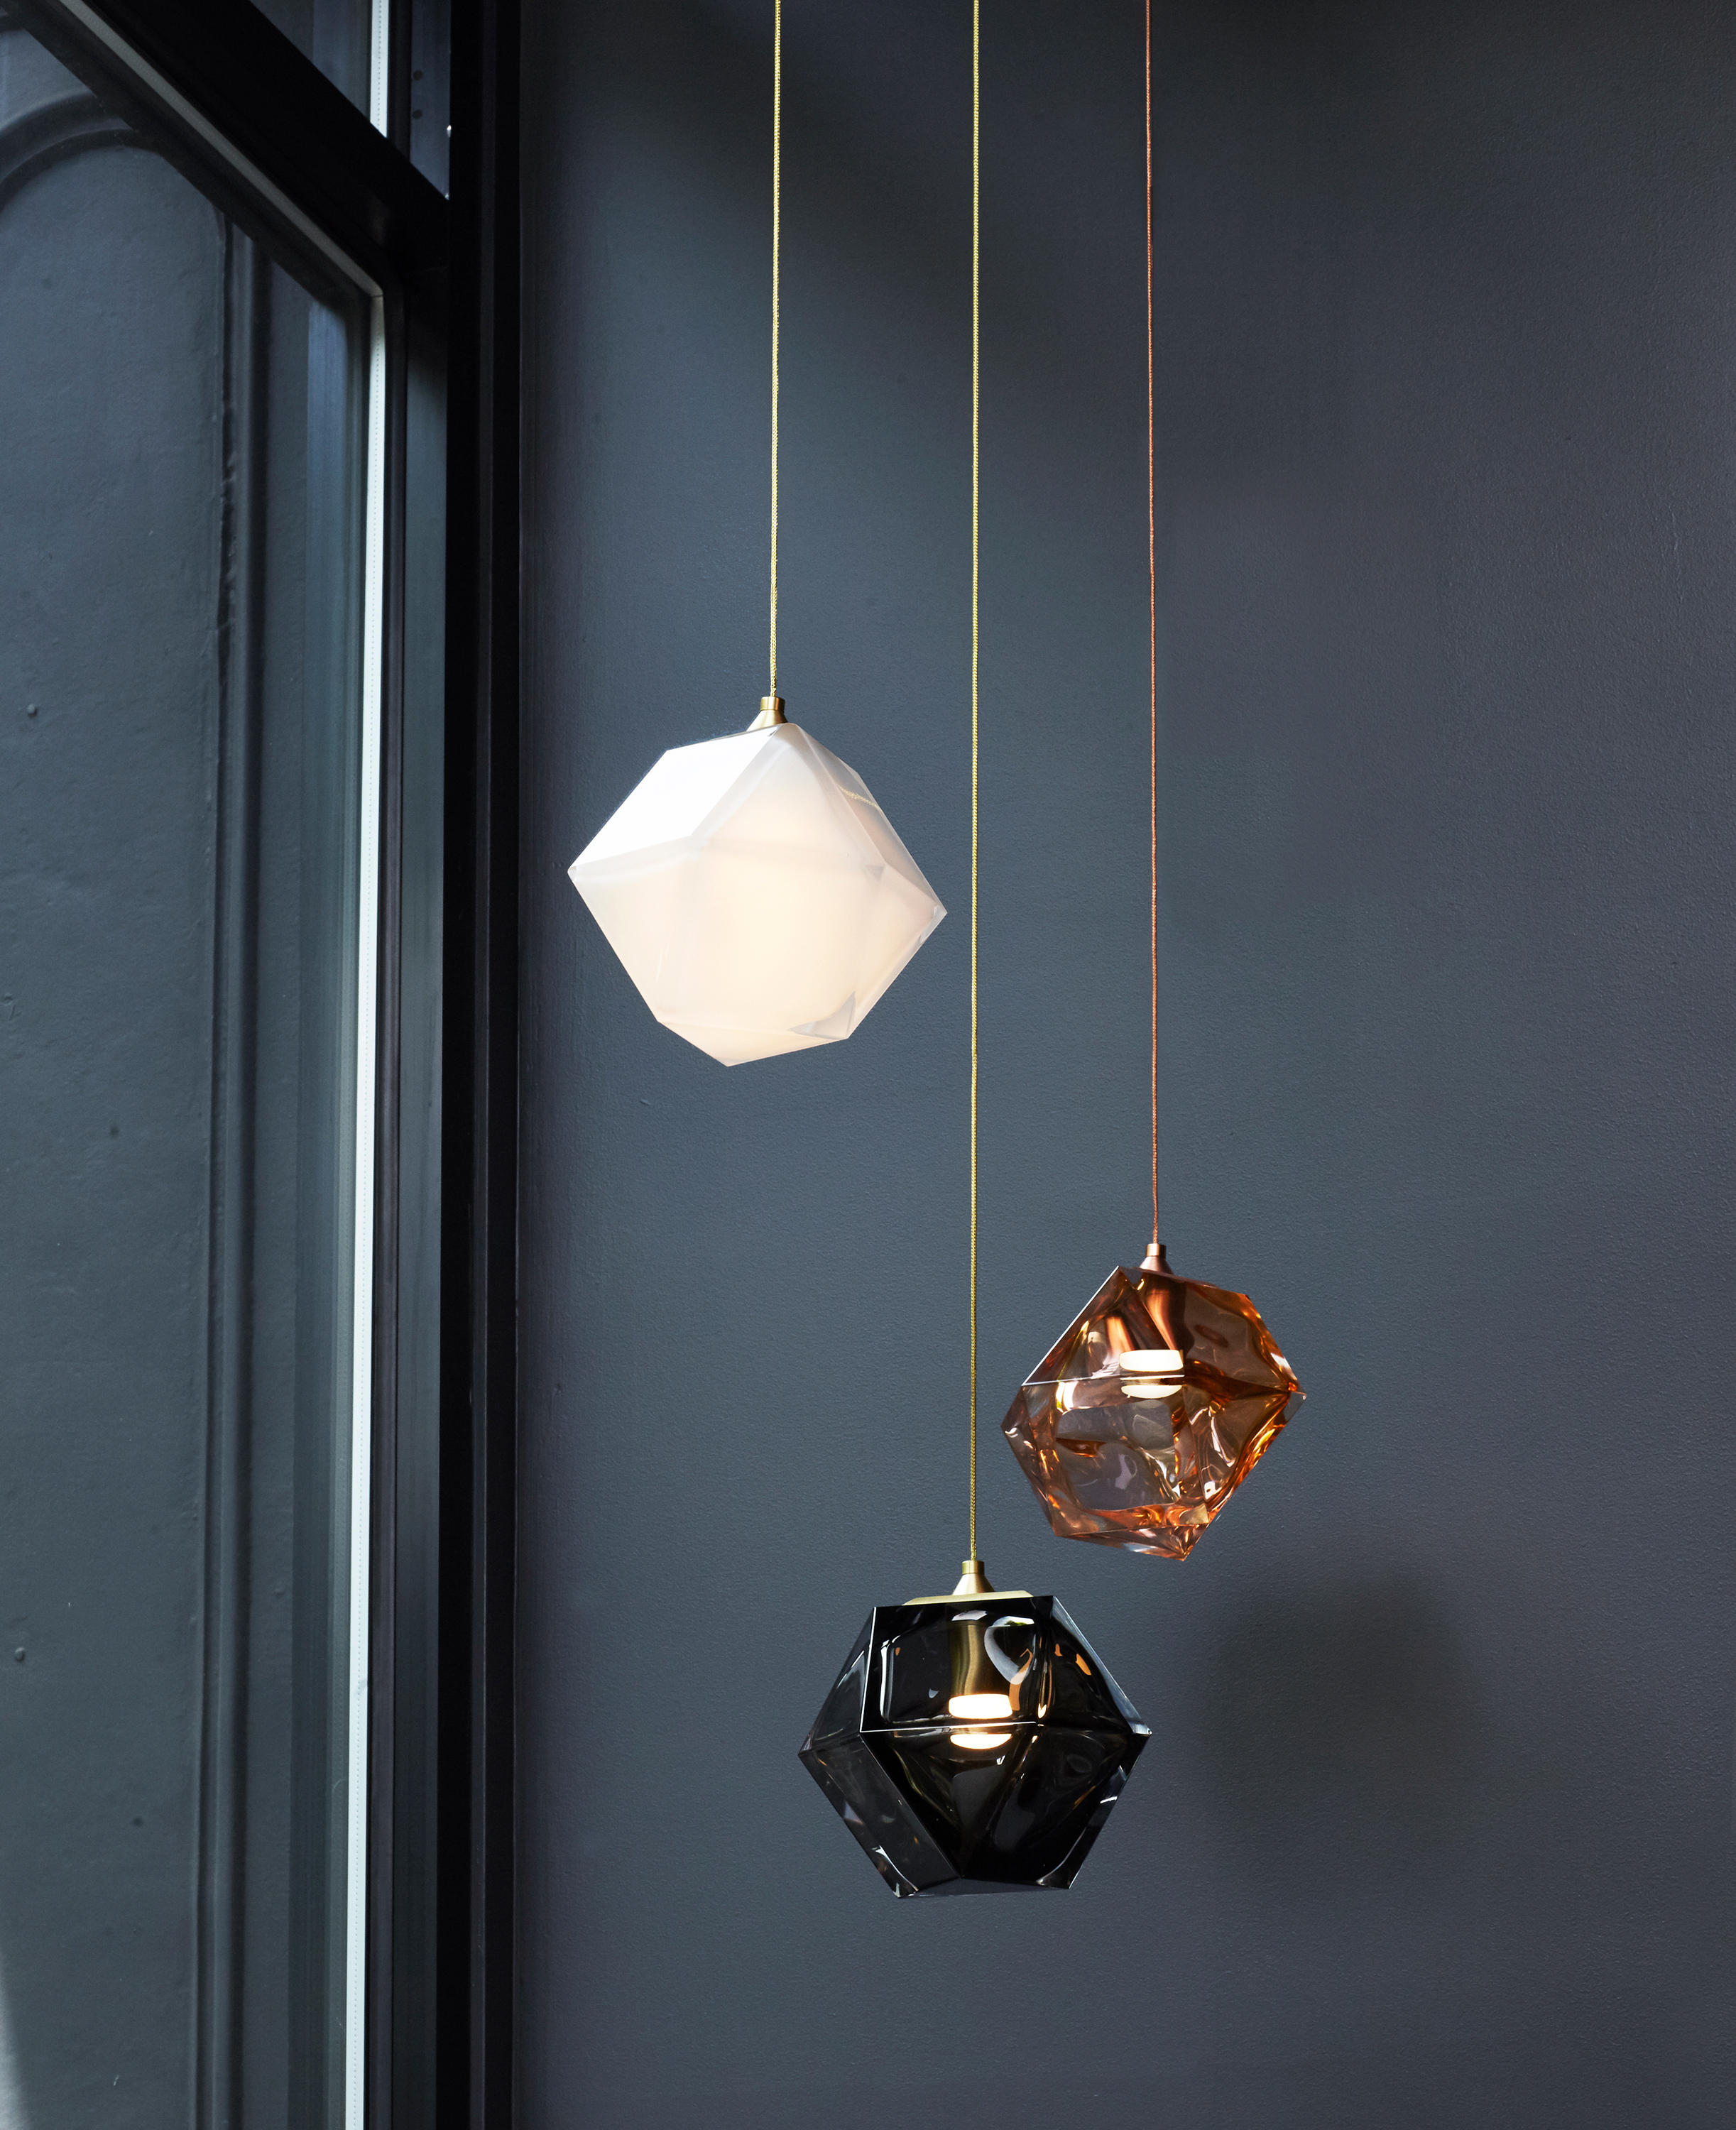 cylindrical lamp pendant large bubbled hanging glass